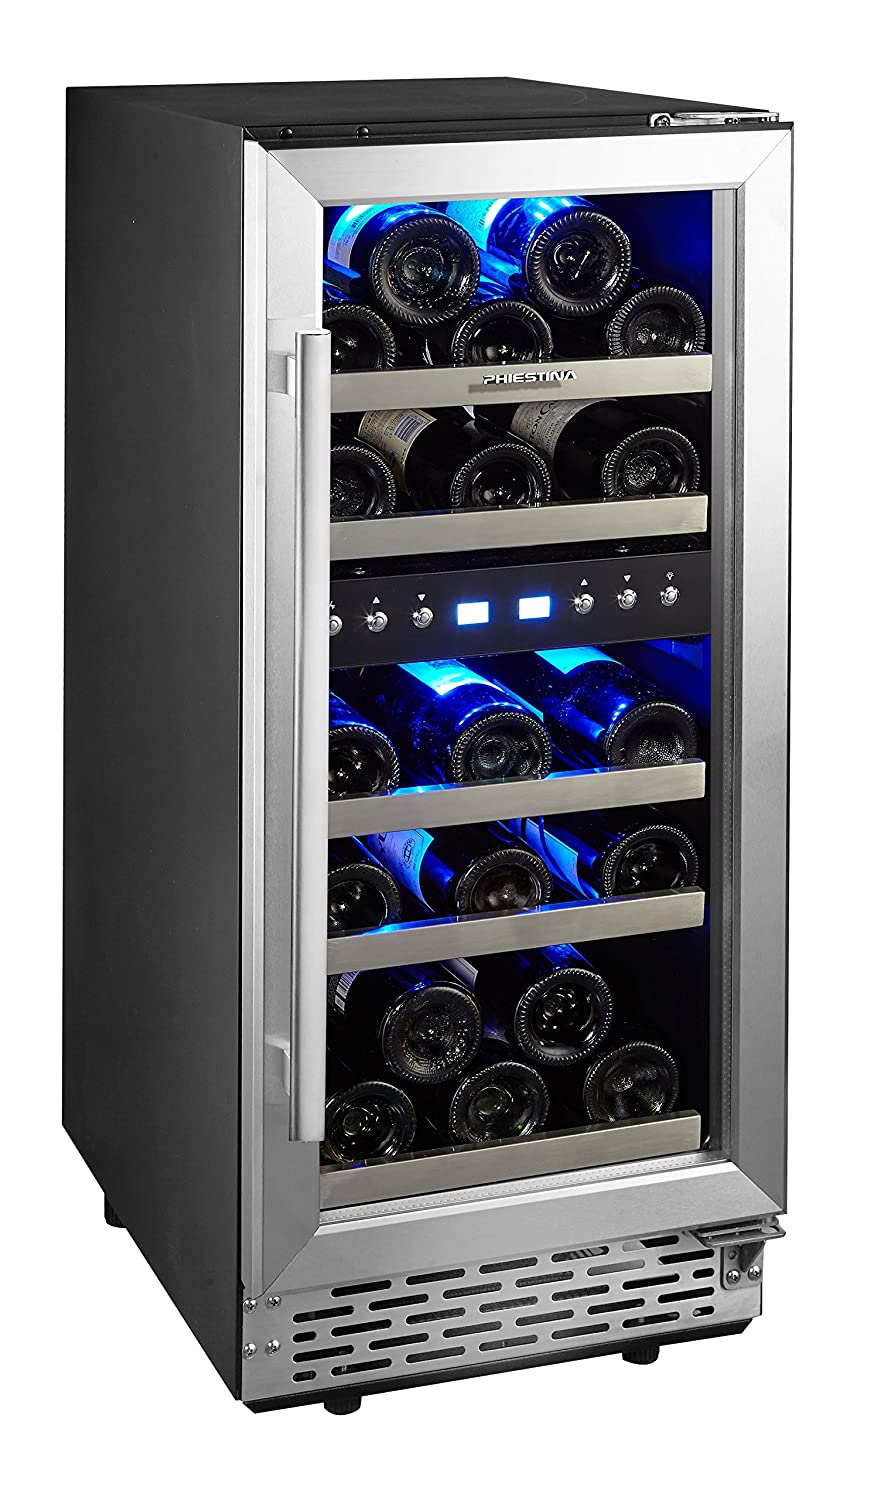 Phiestina 29 Bottle Wine Cooler 15'' Built-in or Free-standing Compressor Cooling Refrigerator. Stainless Steel & Glass Door Wine Showcase